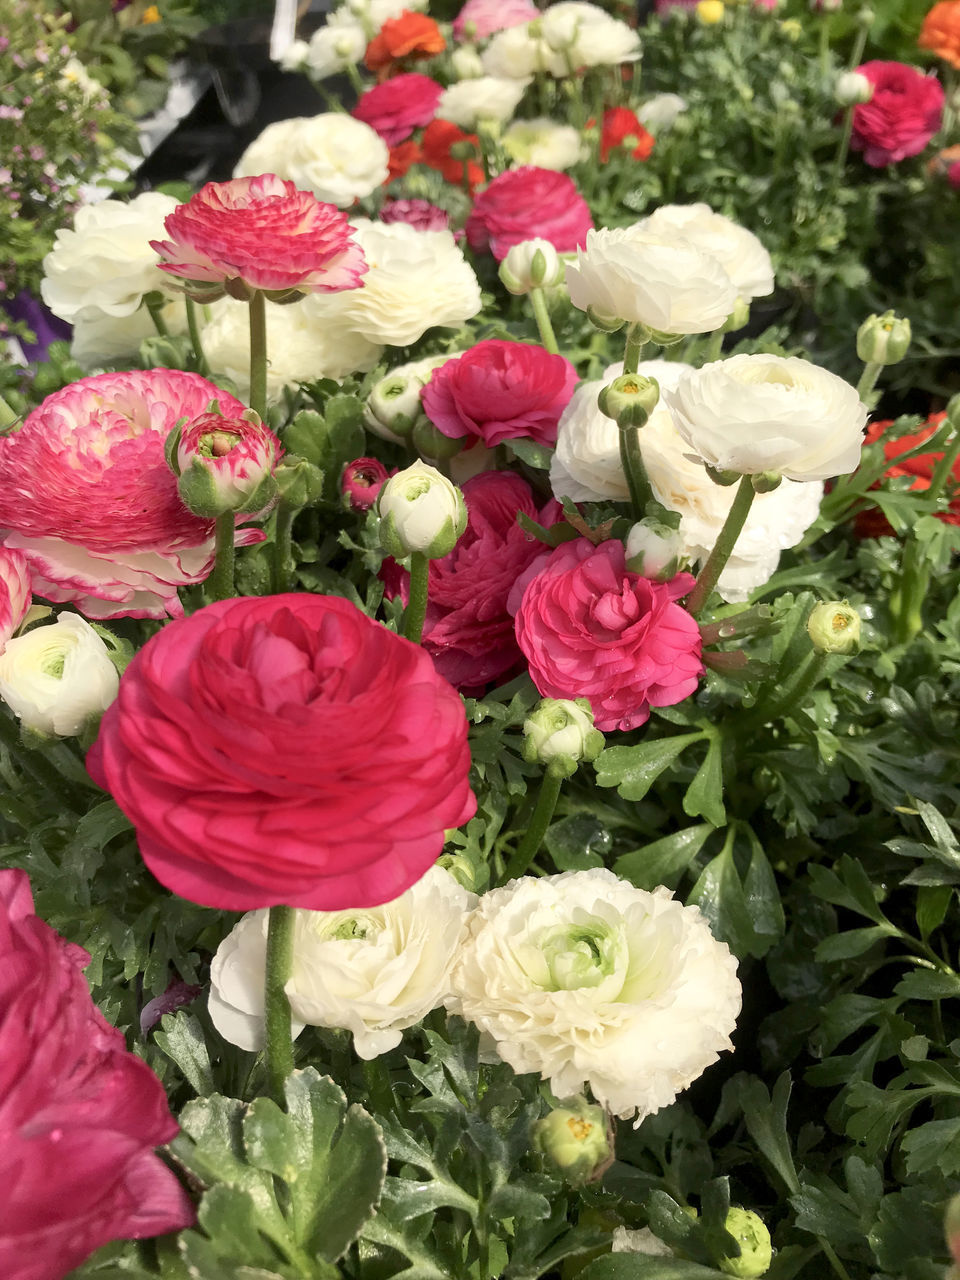 HIGH ANGLE VIEW OF ROSE BOUQUET ON PLANT